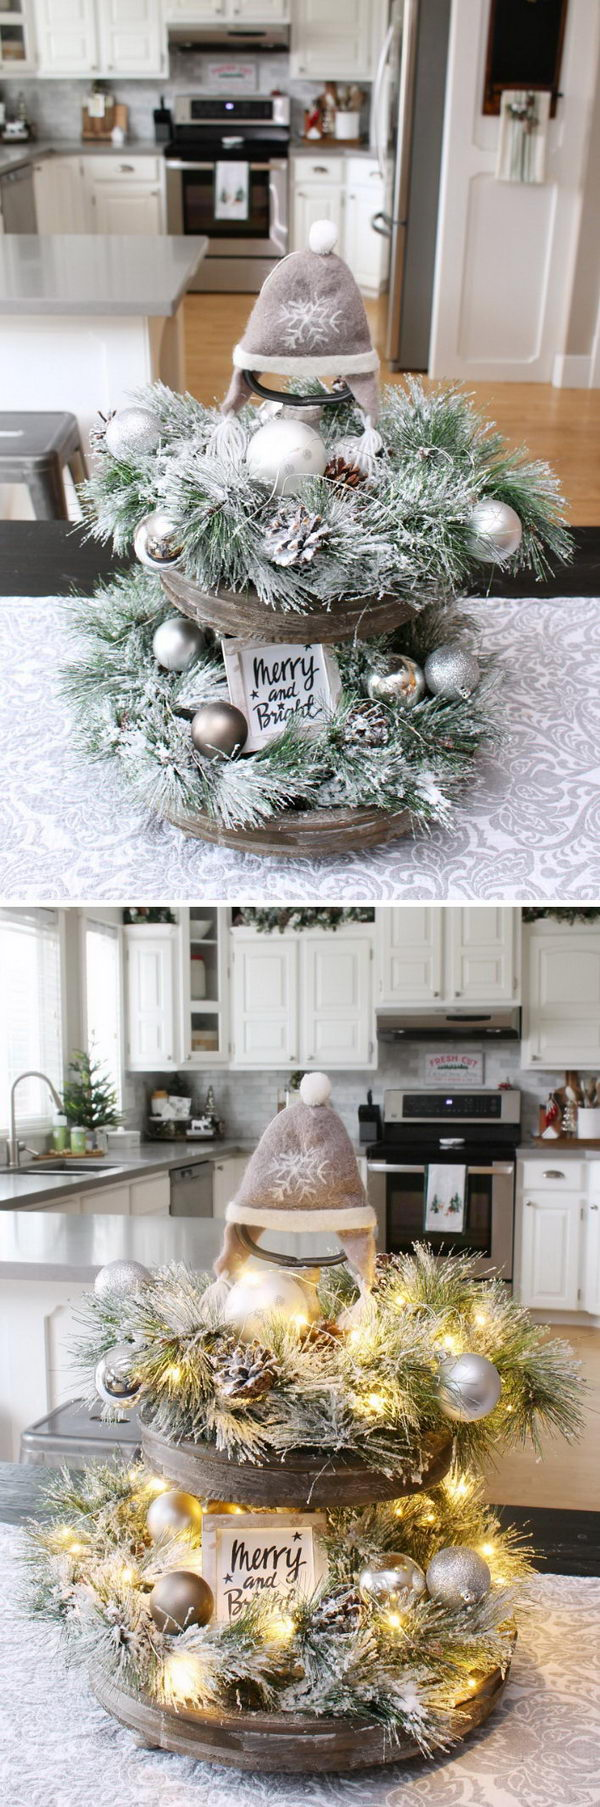 Rustic Light Up Christmas Tray